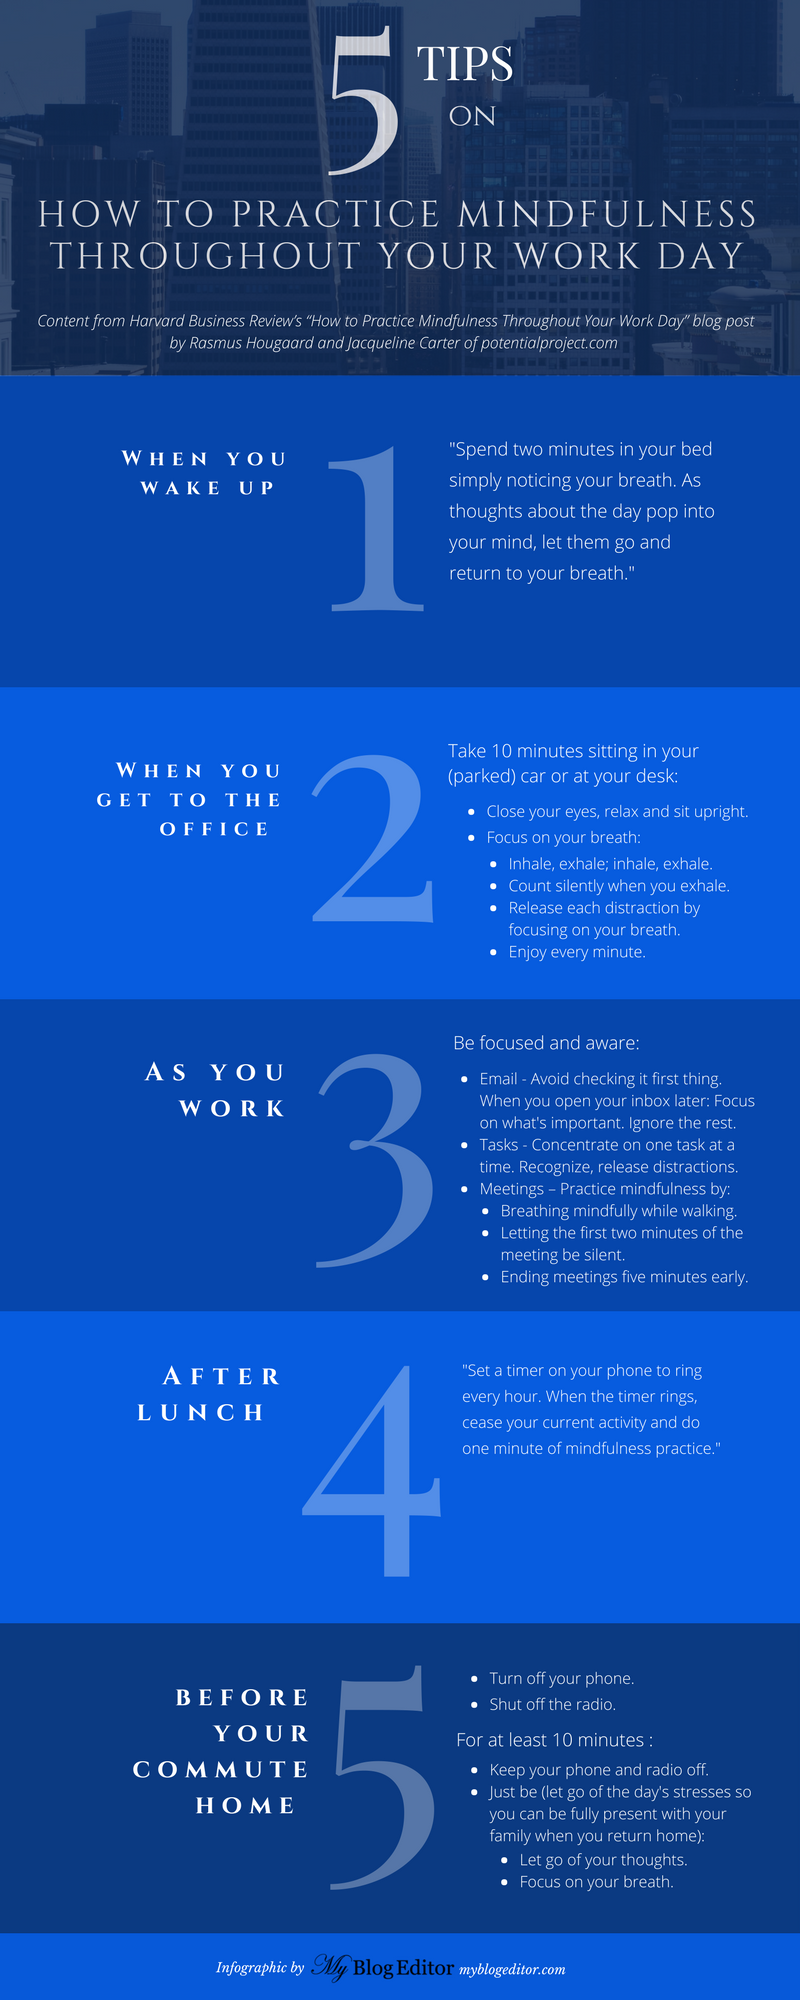 Myblogeditor.com infographic based on Harvard Business Review post: How to Practice Mindfulness Throughout Your Work Day